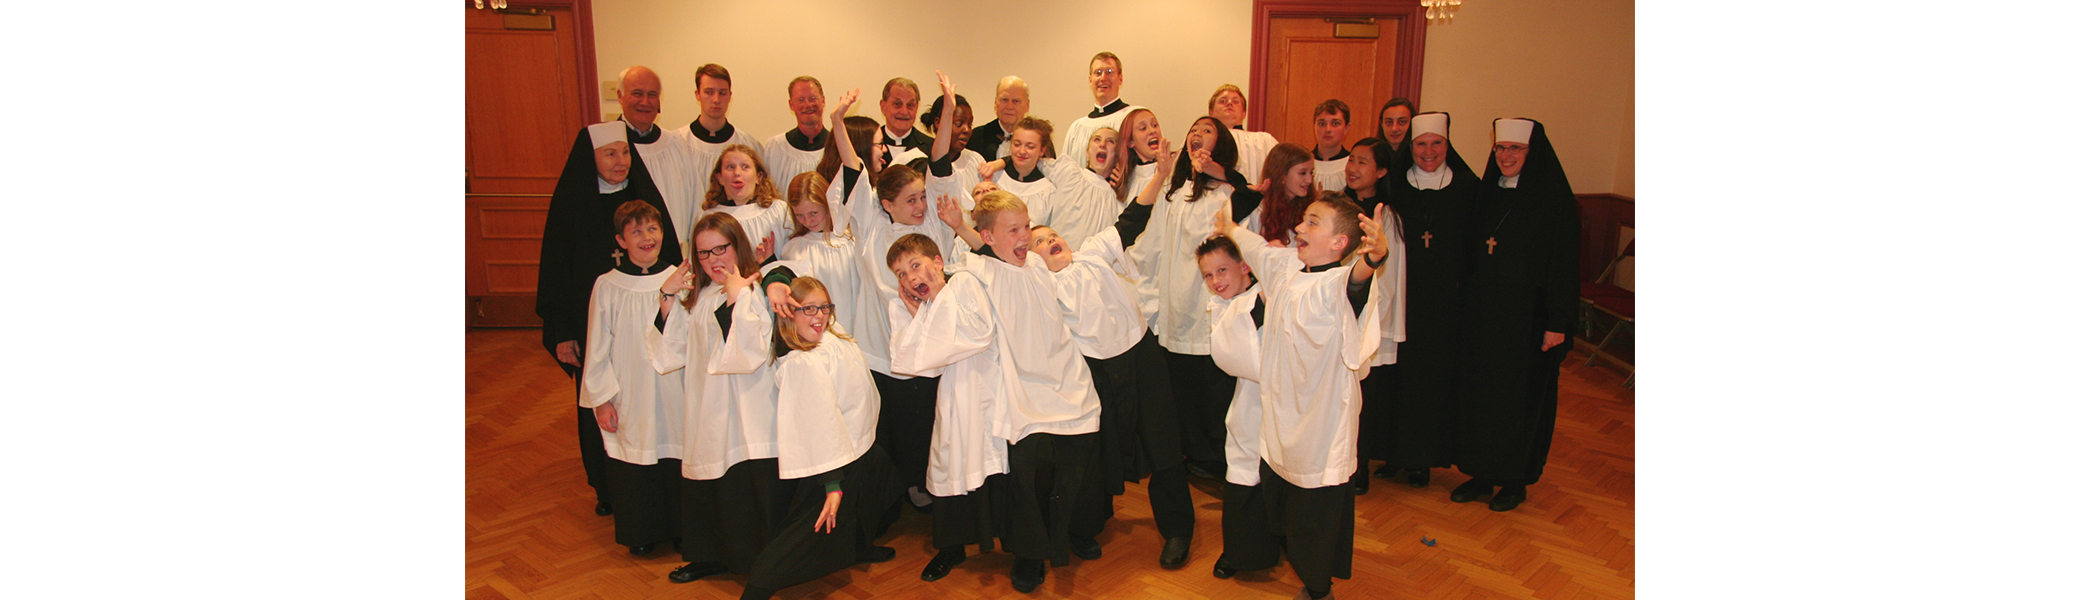 Slider Choir 1